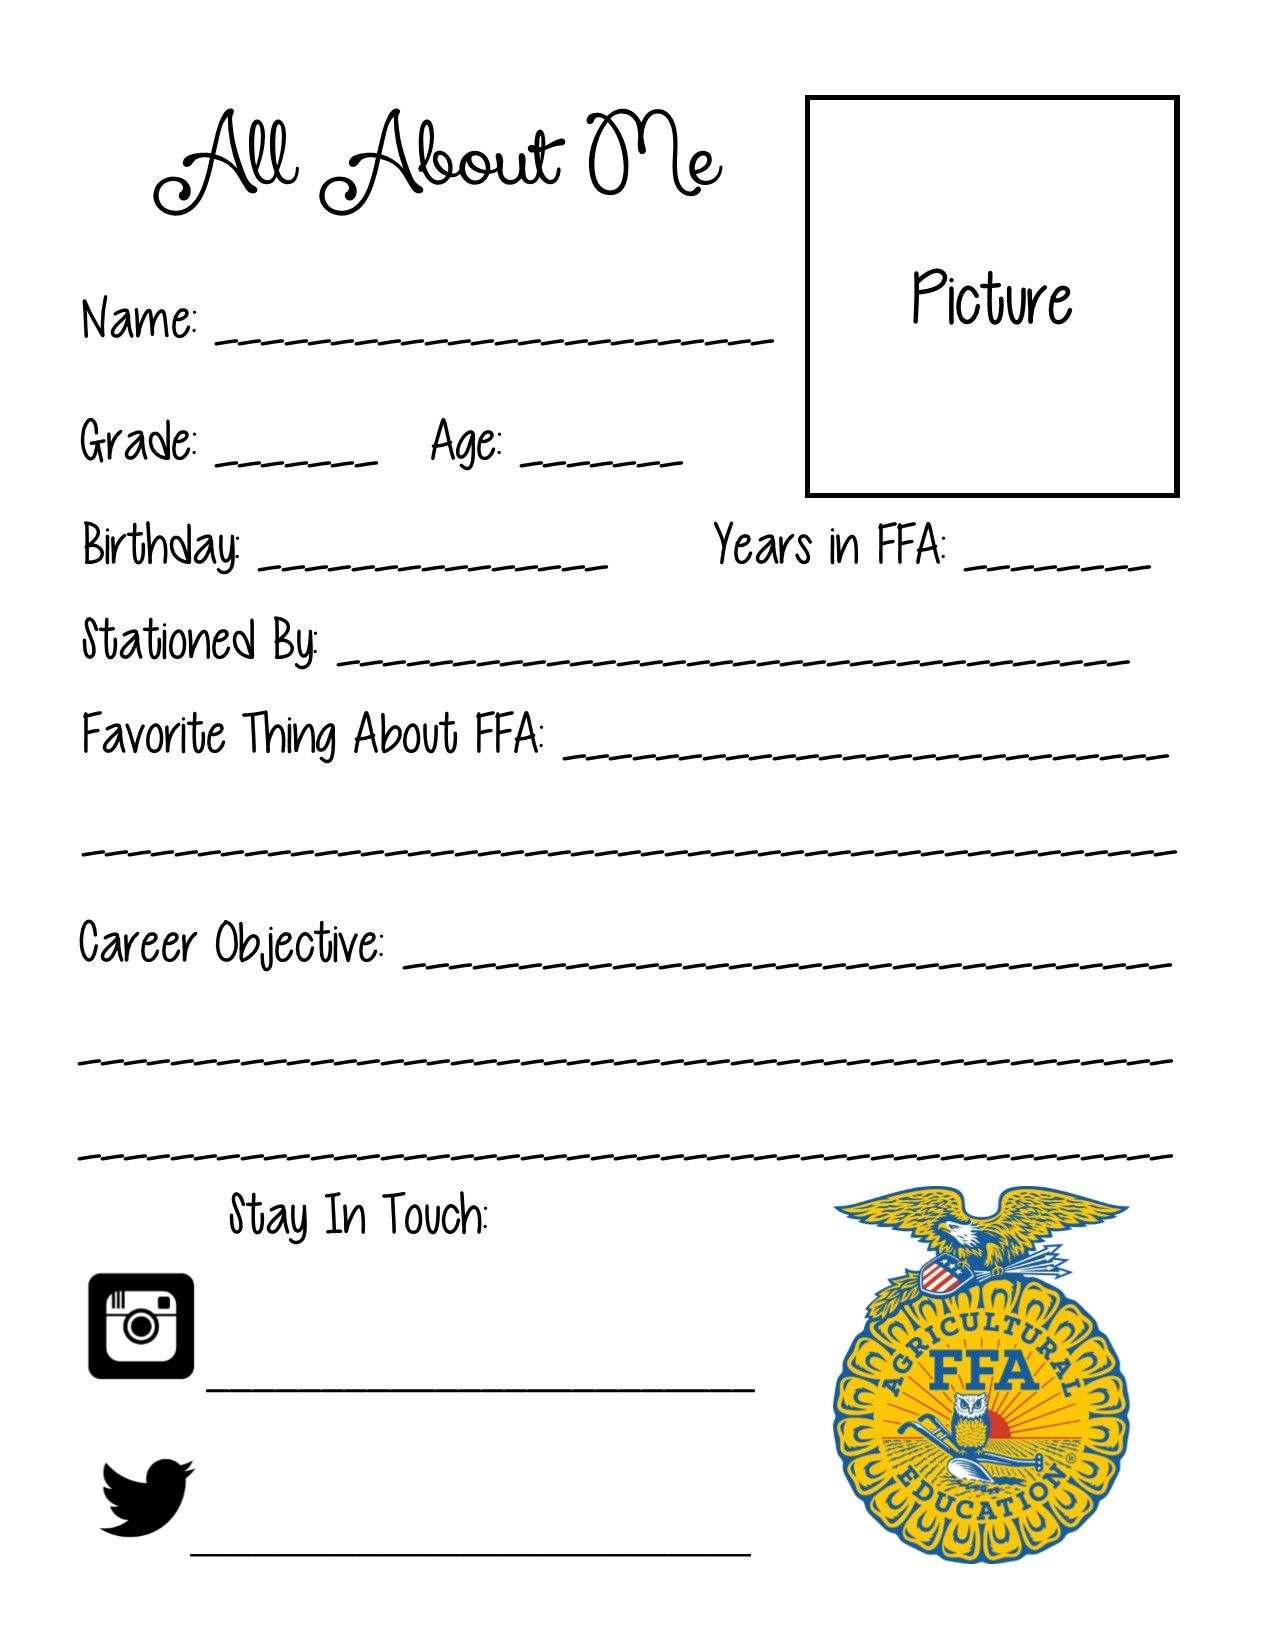 All About Me sheet for FFA Officers to put in classrooms ...